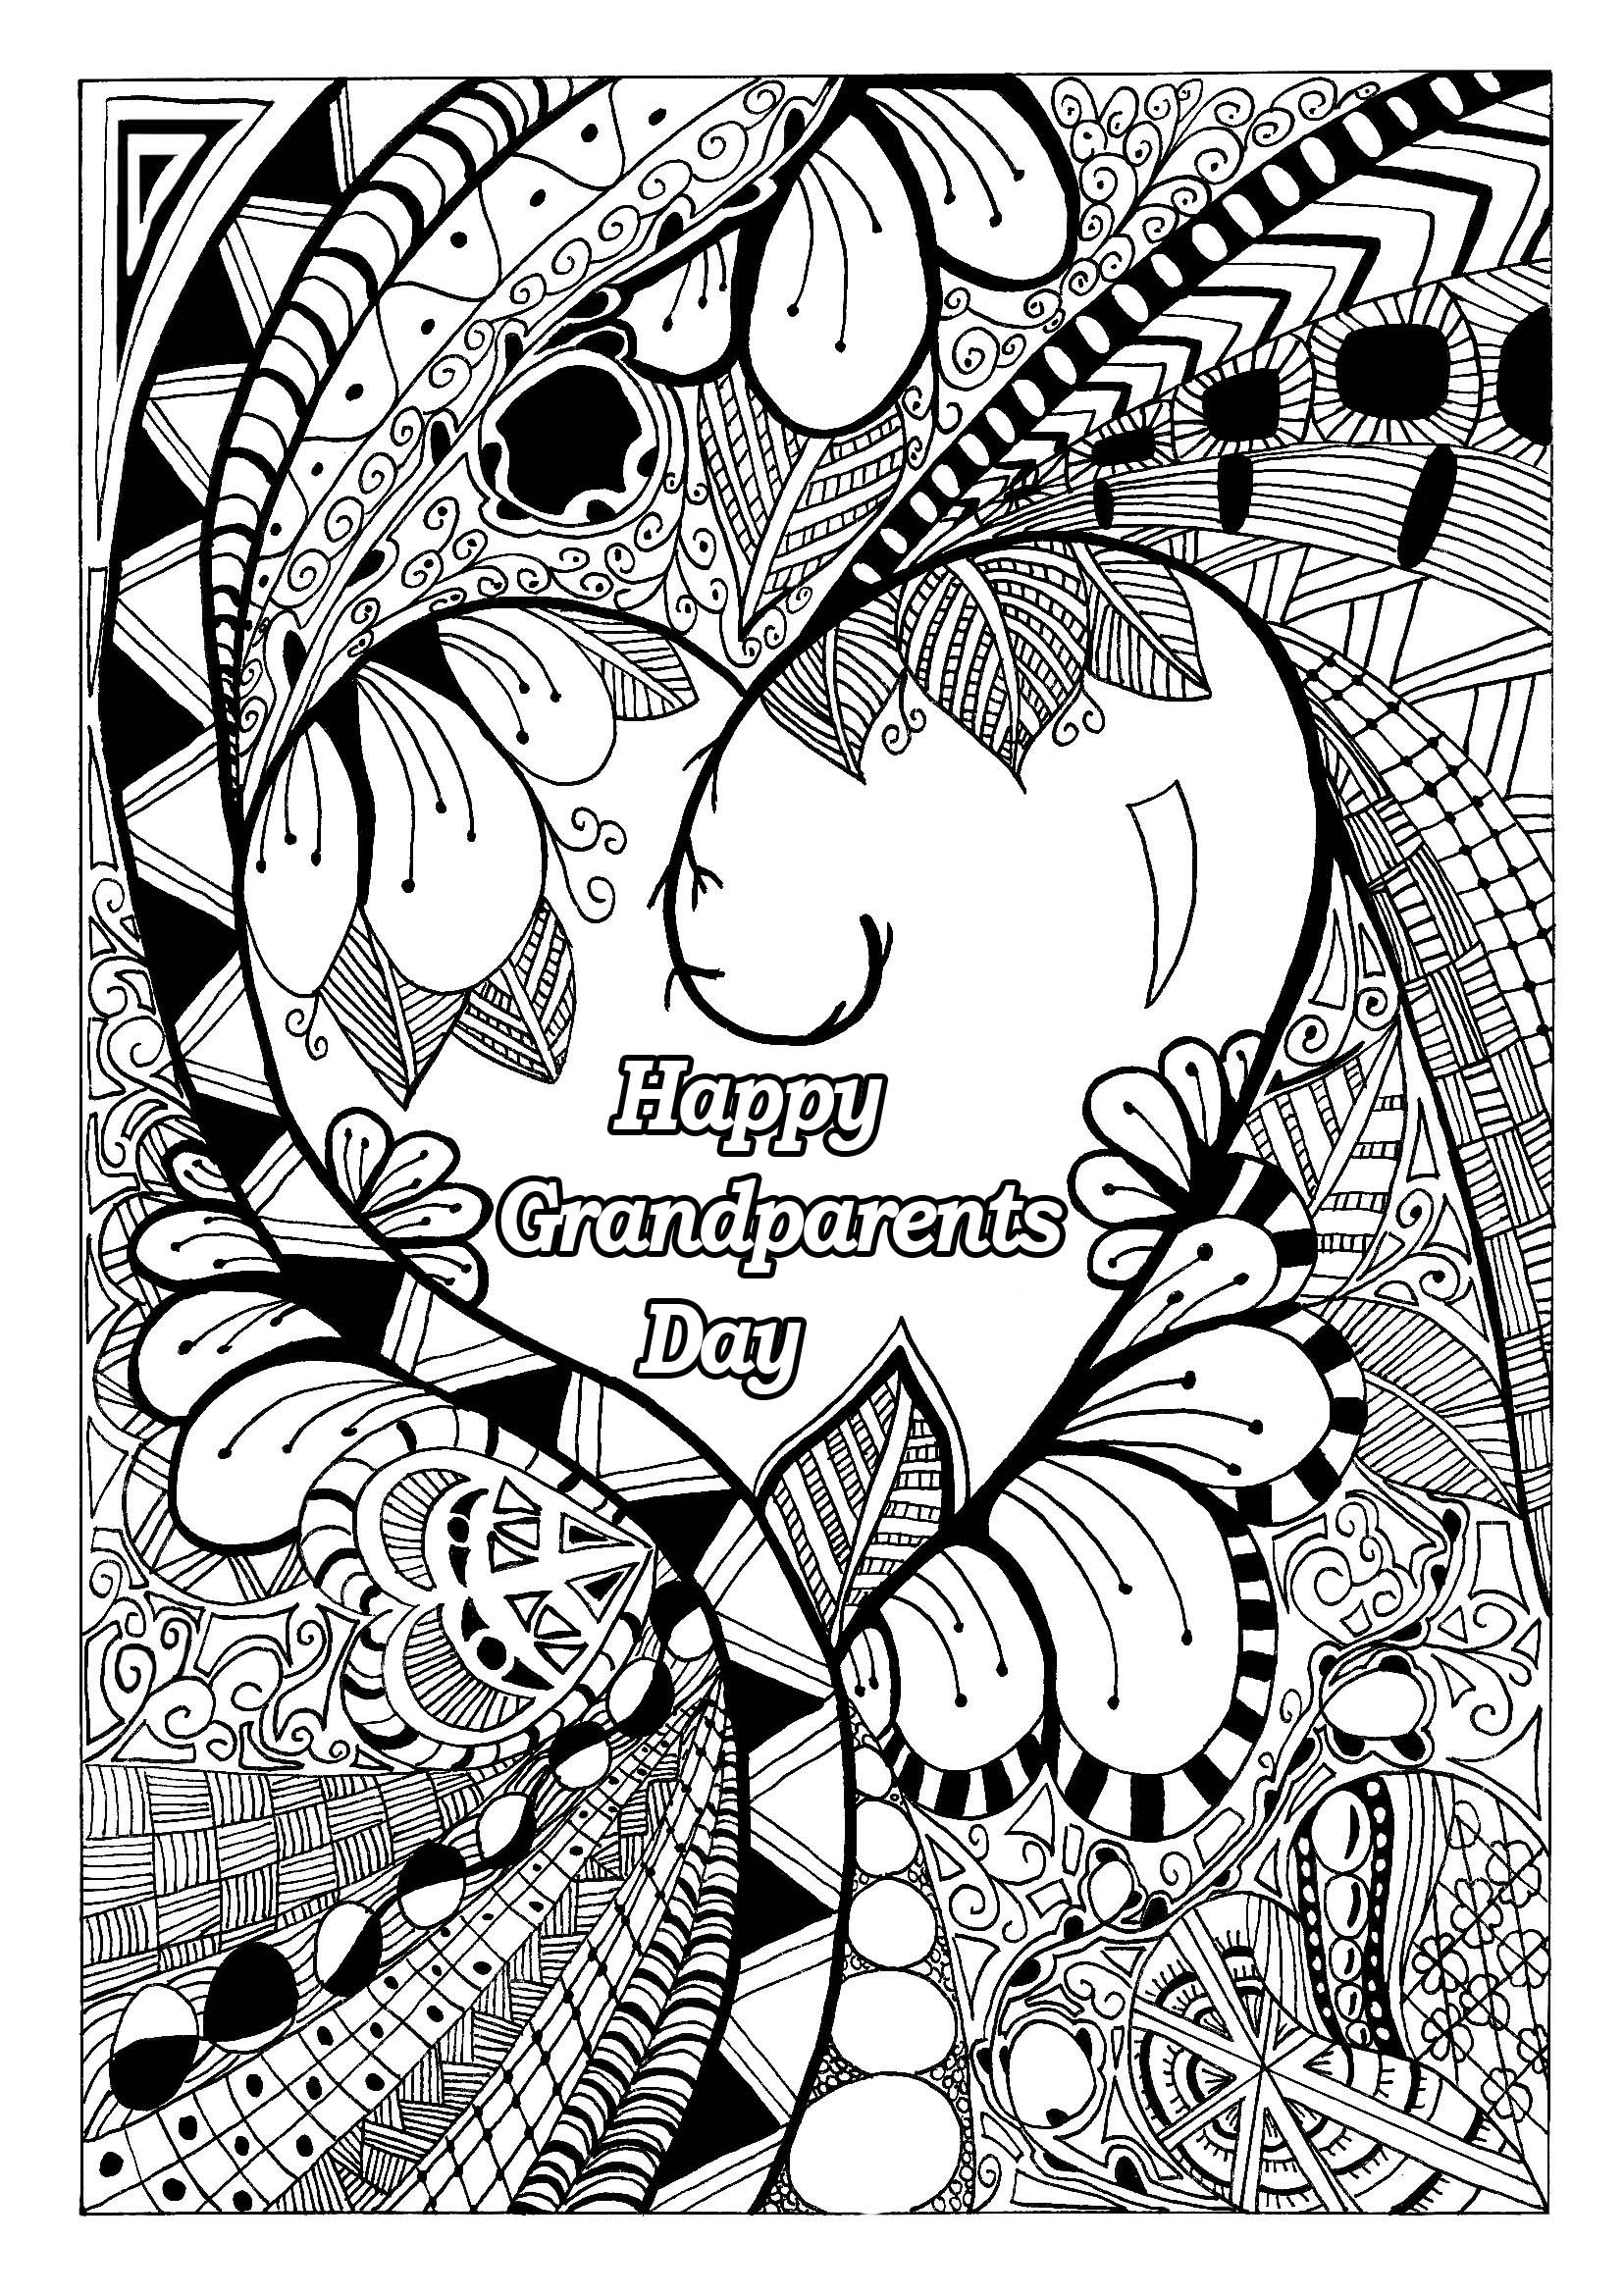 Grandparents day 1 | Grandparents Day - Coloring pages for adults ...